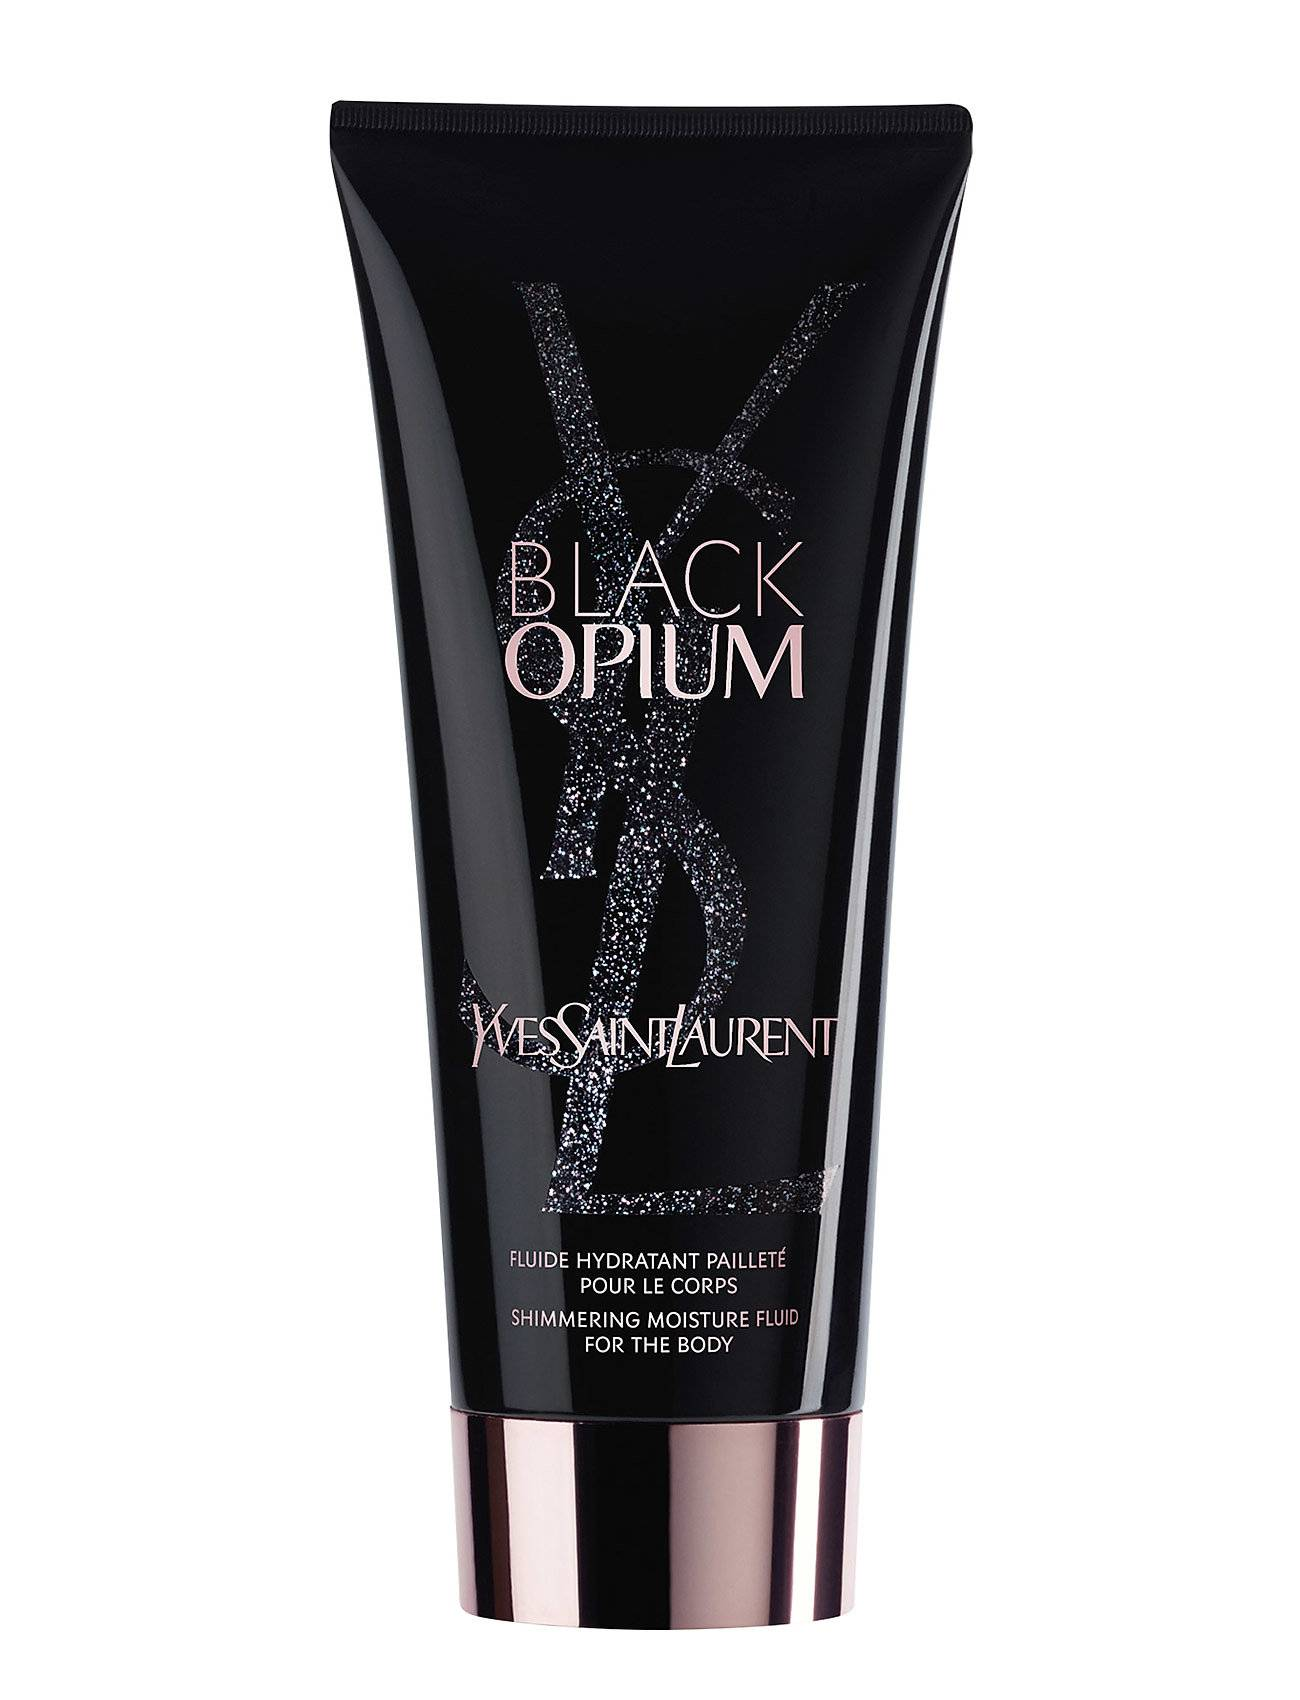 Yves Saint Laurent Black Opium Body Lotion 200 Ml